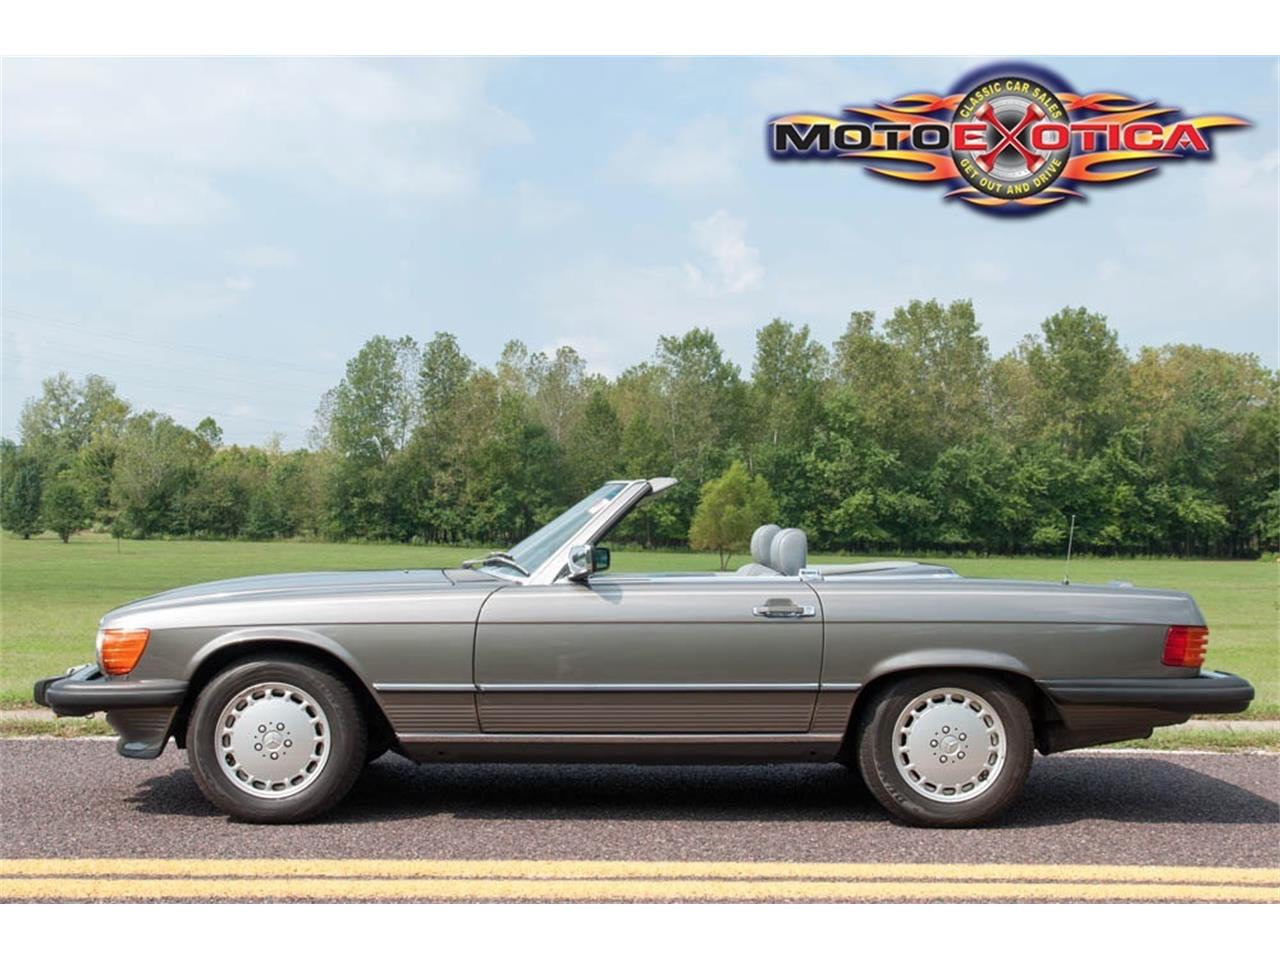 Large Picture of '89 Mercedes-Benz 560SL located in St. Louis Missouri Auction Vehicle Offered by MotoeXotica Classic Cars - GU6G